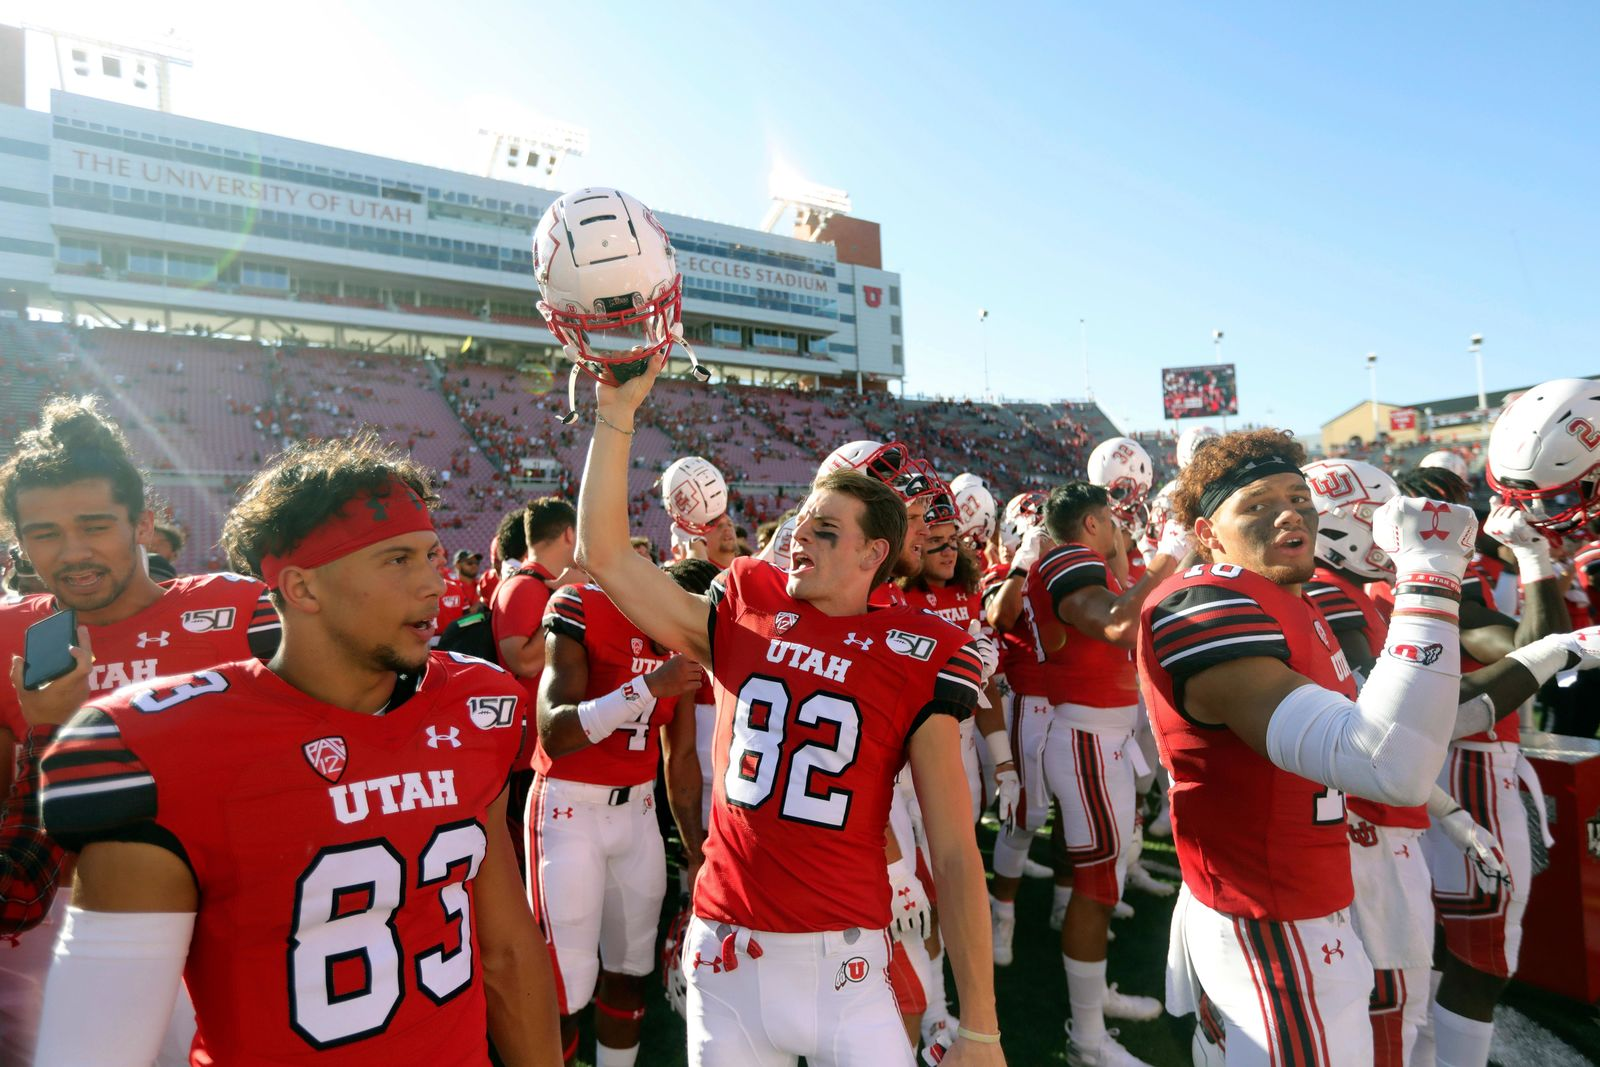 Utah wide receiver Dylan Slavens (82) celebrates with his teammate following their victory over Idaho State during an NCAA college football game Saturday, Sept. 14, 2019, in Salt Lake City. (AP Photo/Rick Bowmer)